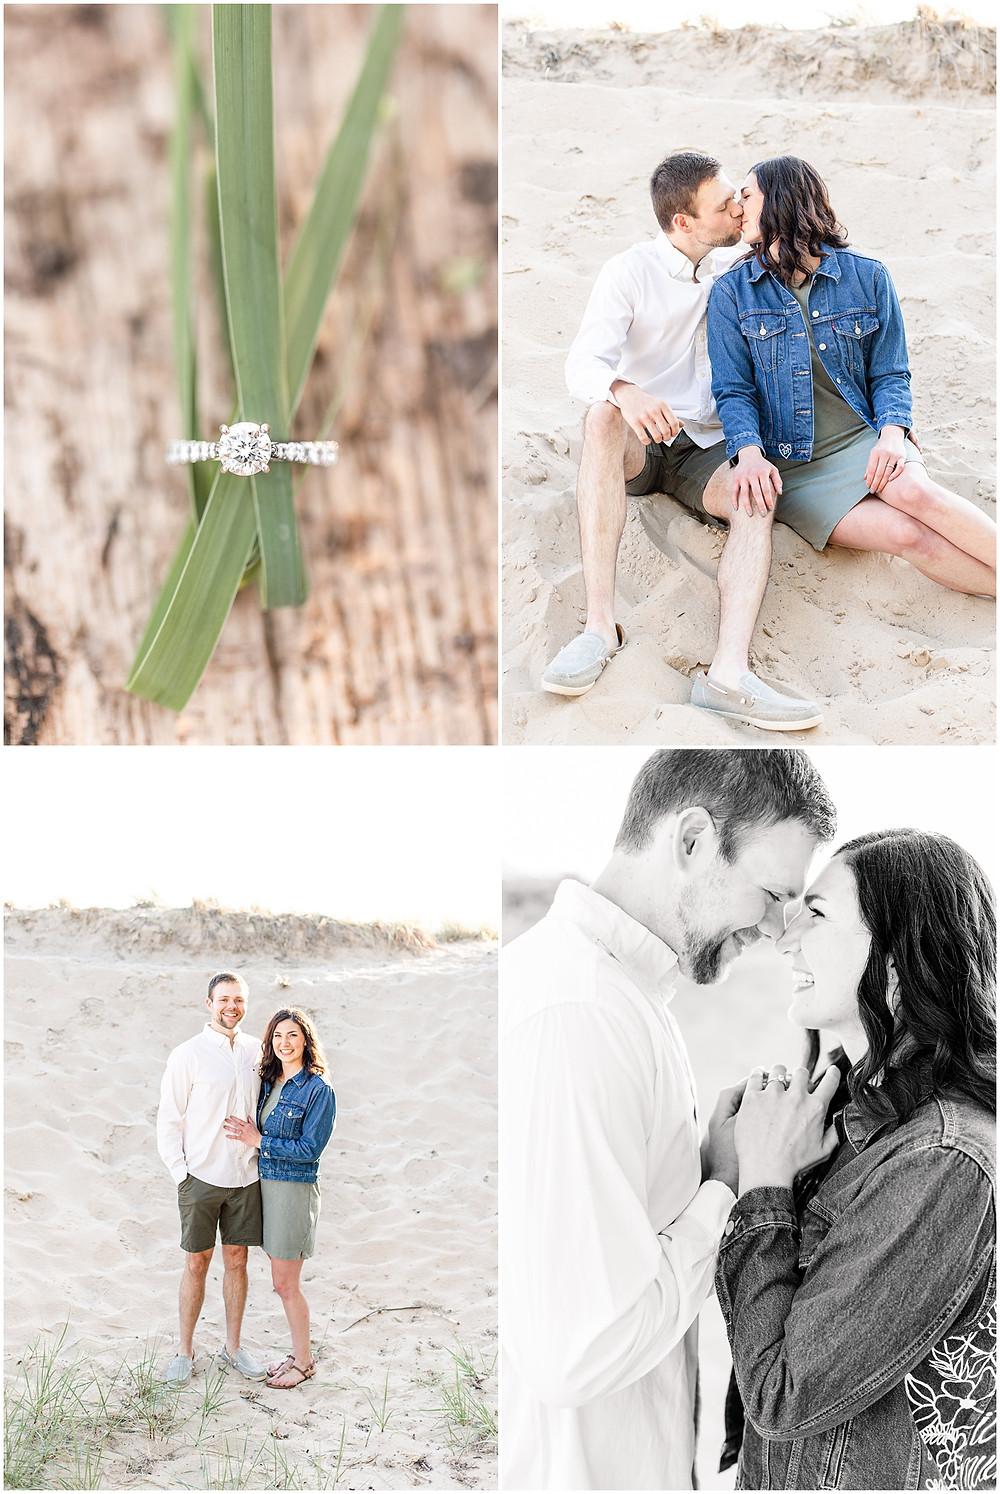 Josh and Andrea wedding photography husband and wife photographer team michigan pictures Lake Harbor Park engagement pictures session photo shoot fiance ring shot kissing standing